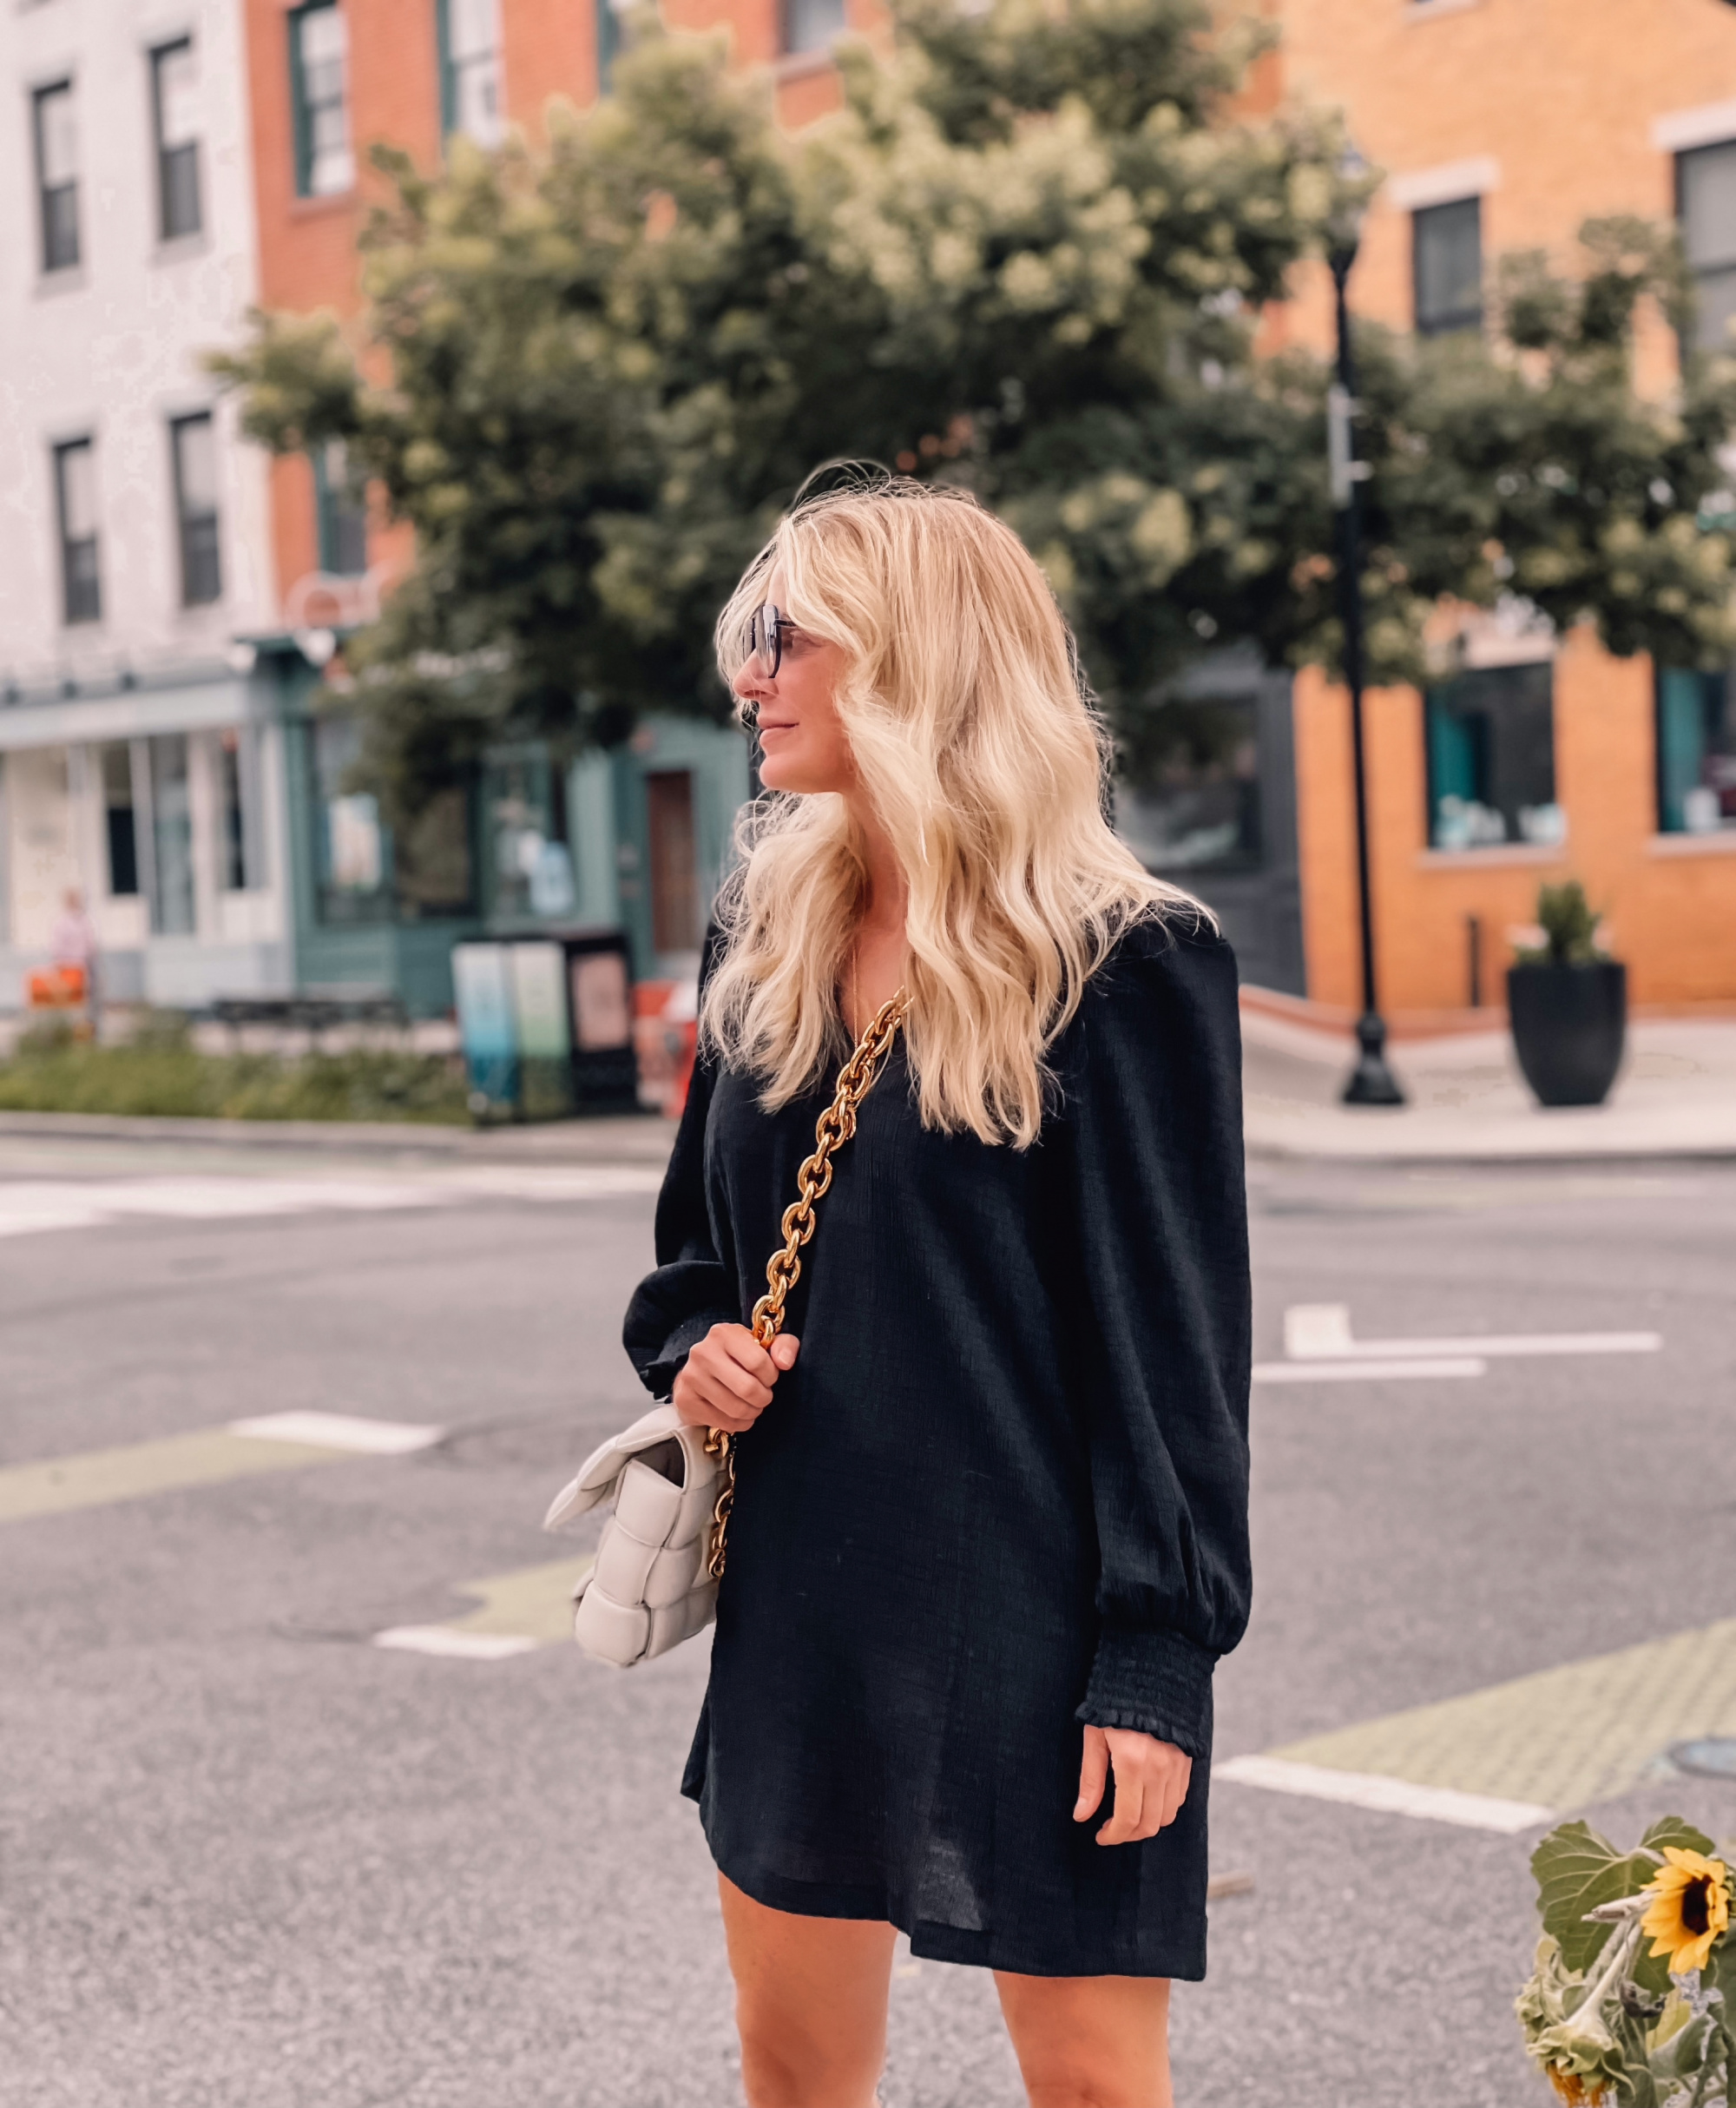 Nordstrom Anniversary Sale fashion finds by fashion blogger over 40 Erin Busbee of Busbee Style featuring BB Dakota by Steve Madden black shift dress with long sleeves